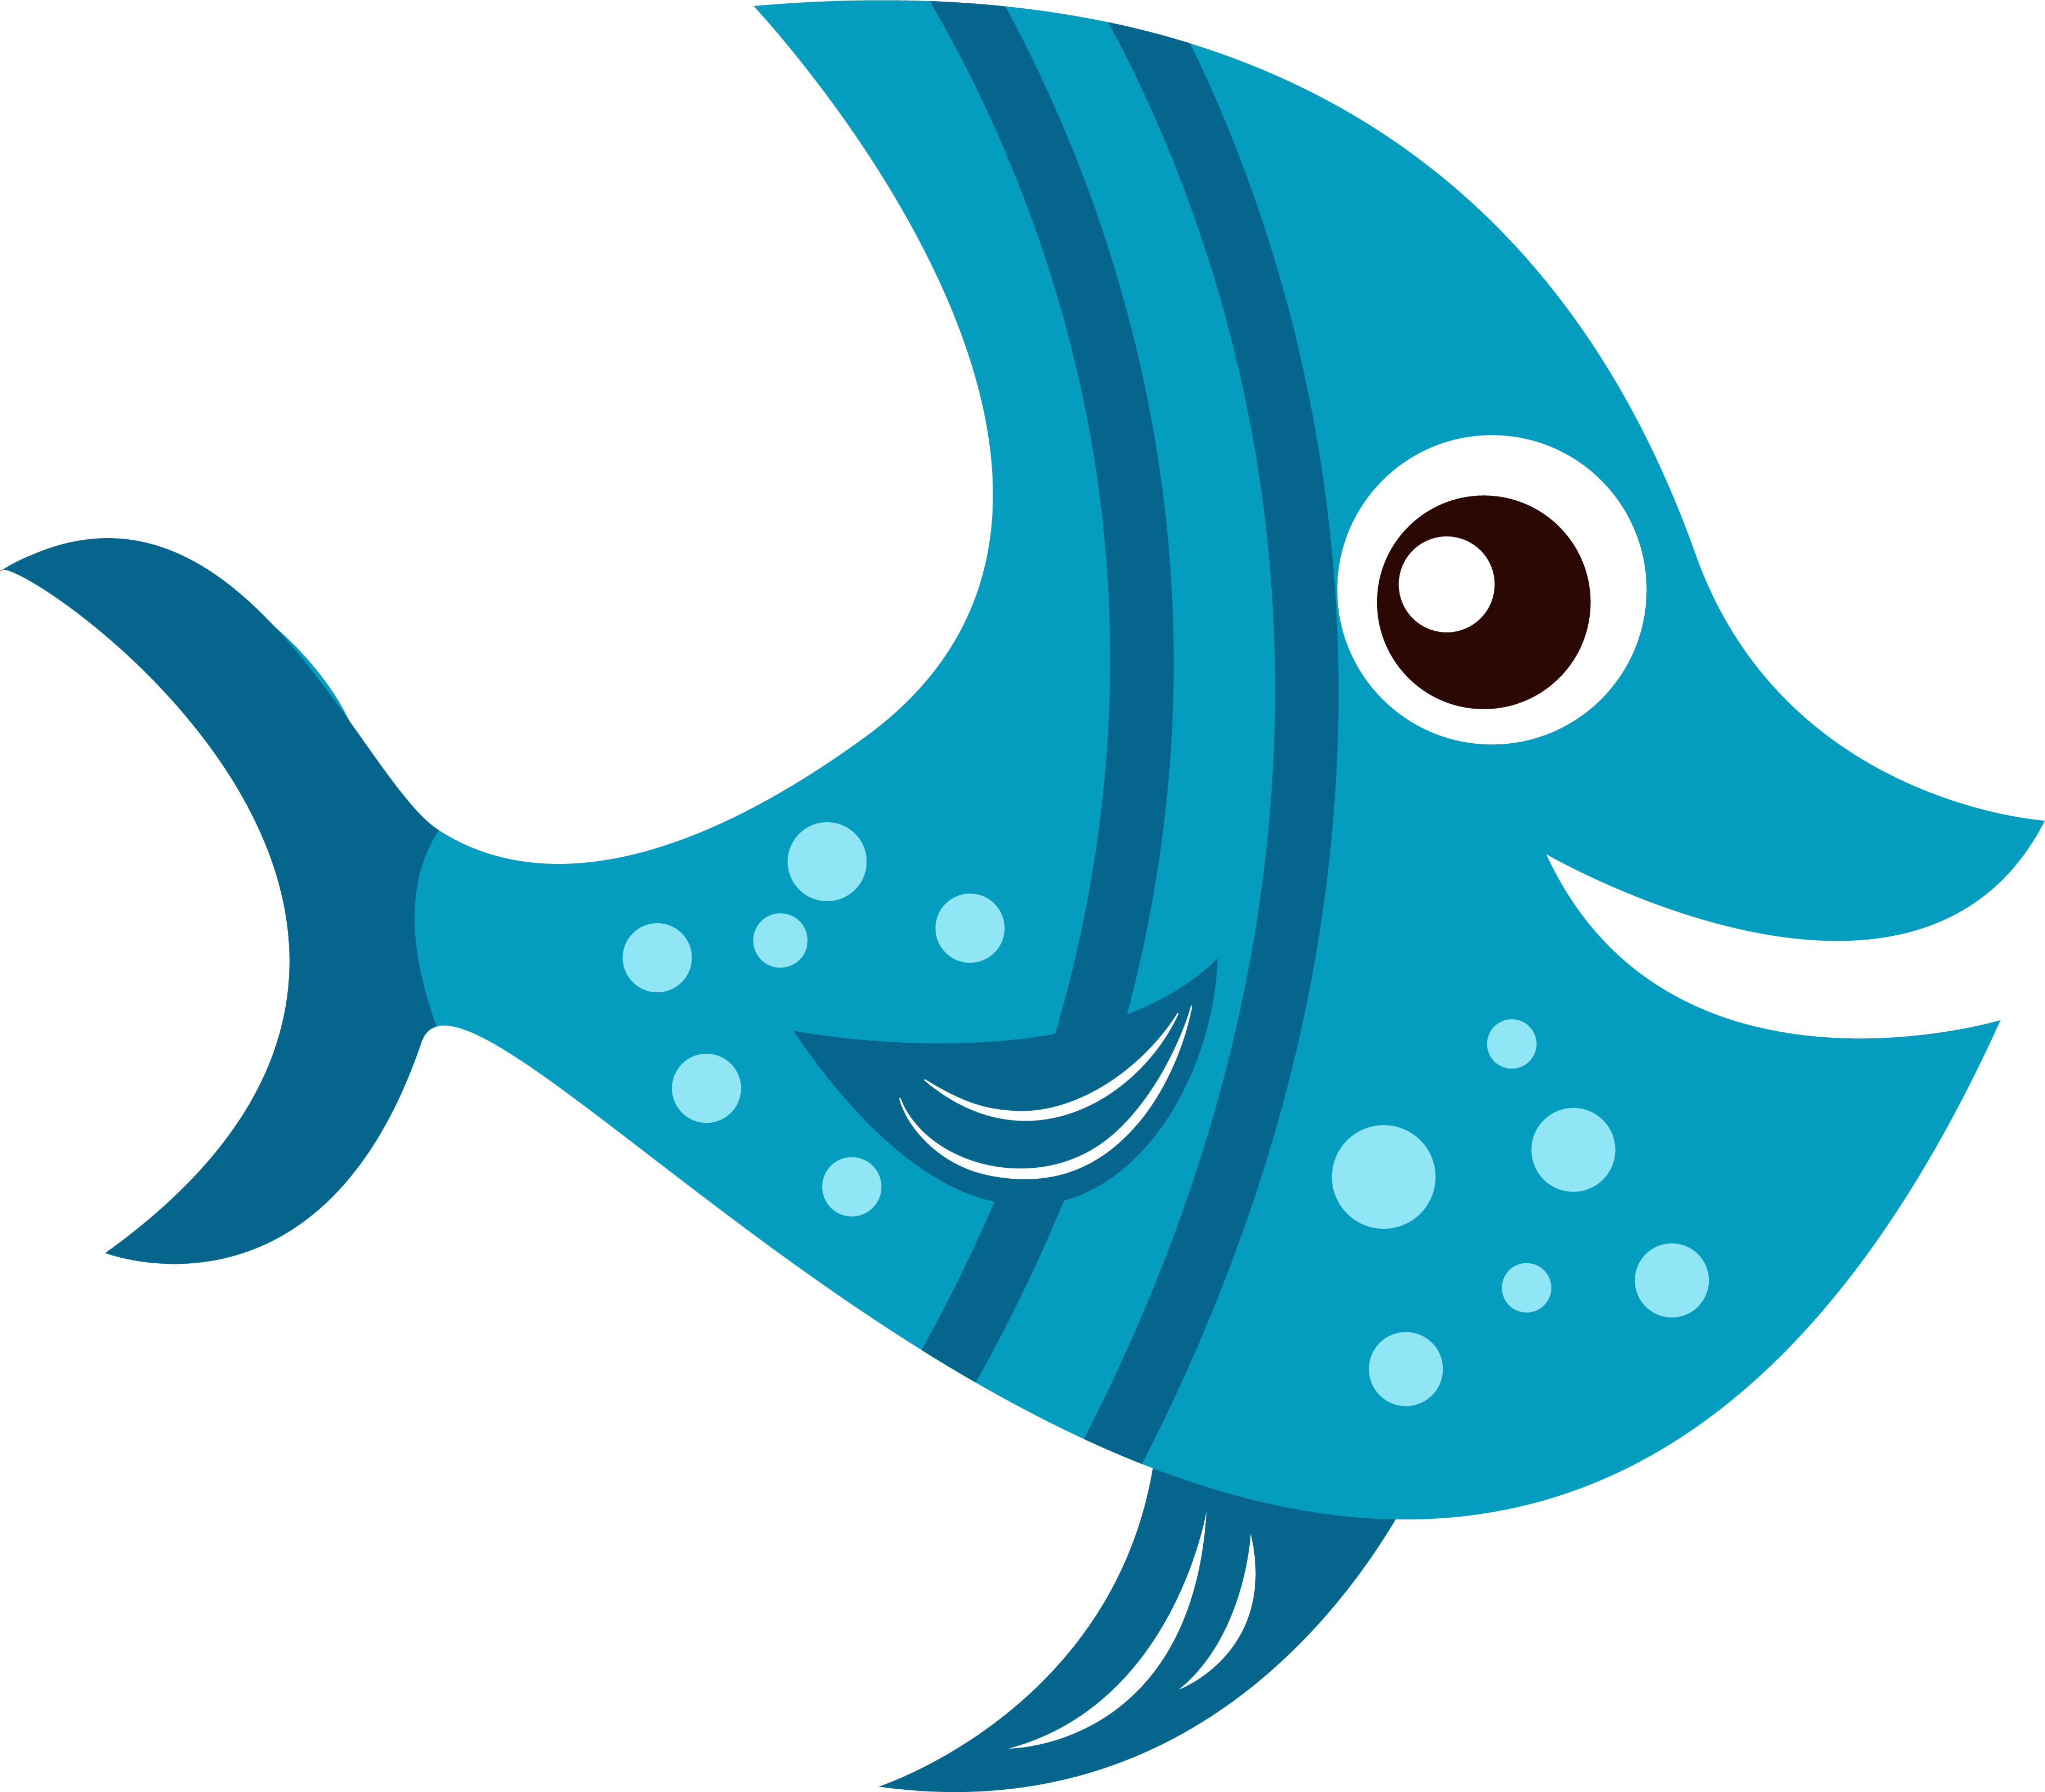 Mask clipart mosquito. Fish png images transparent